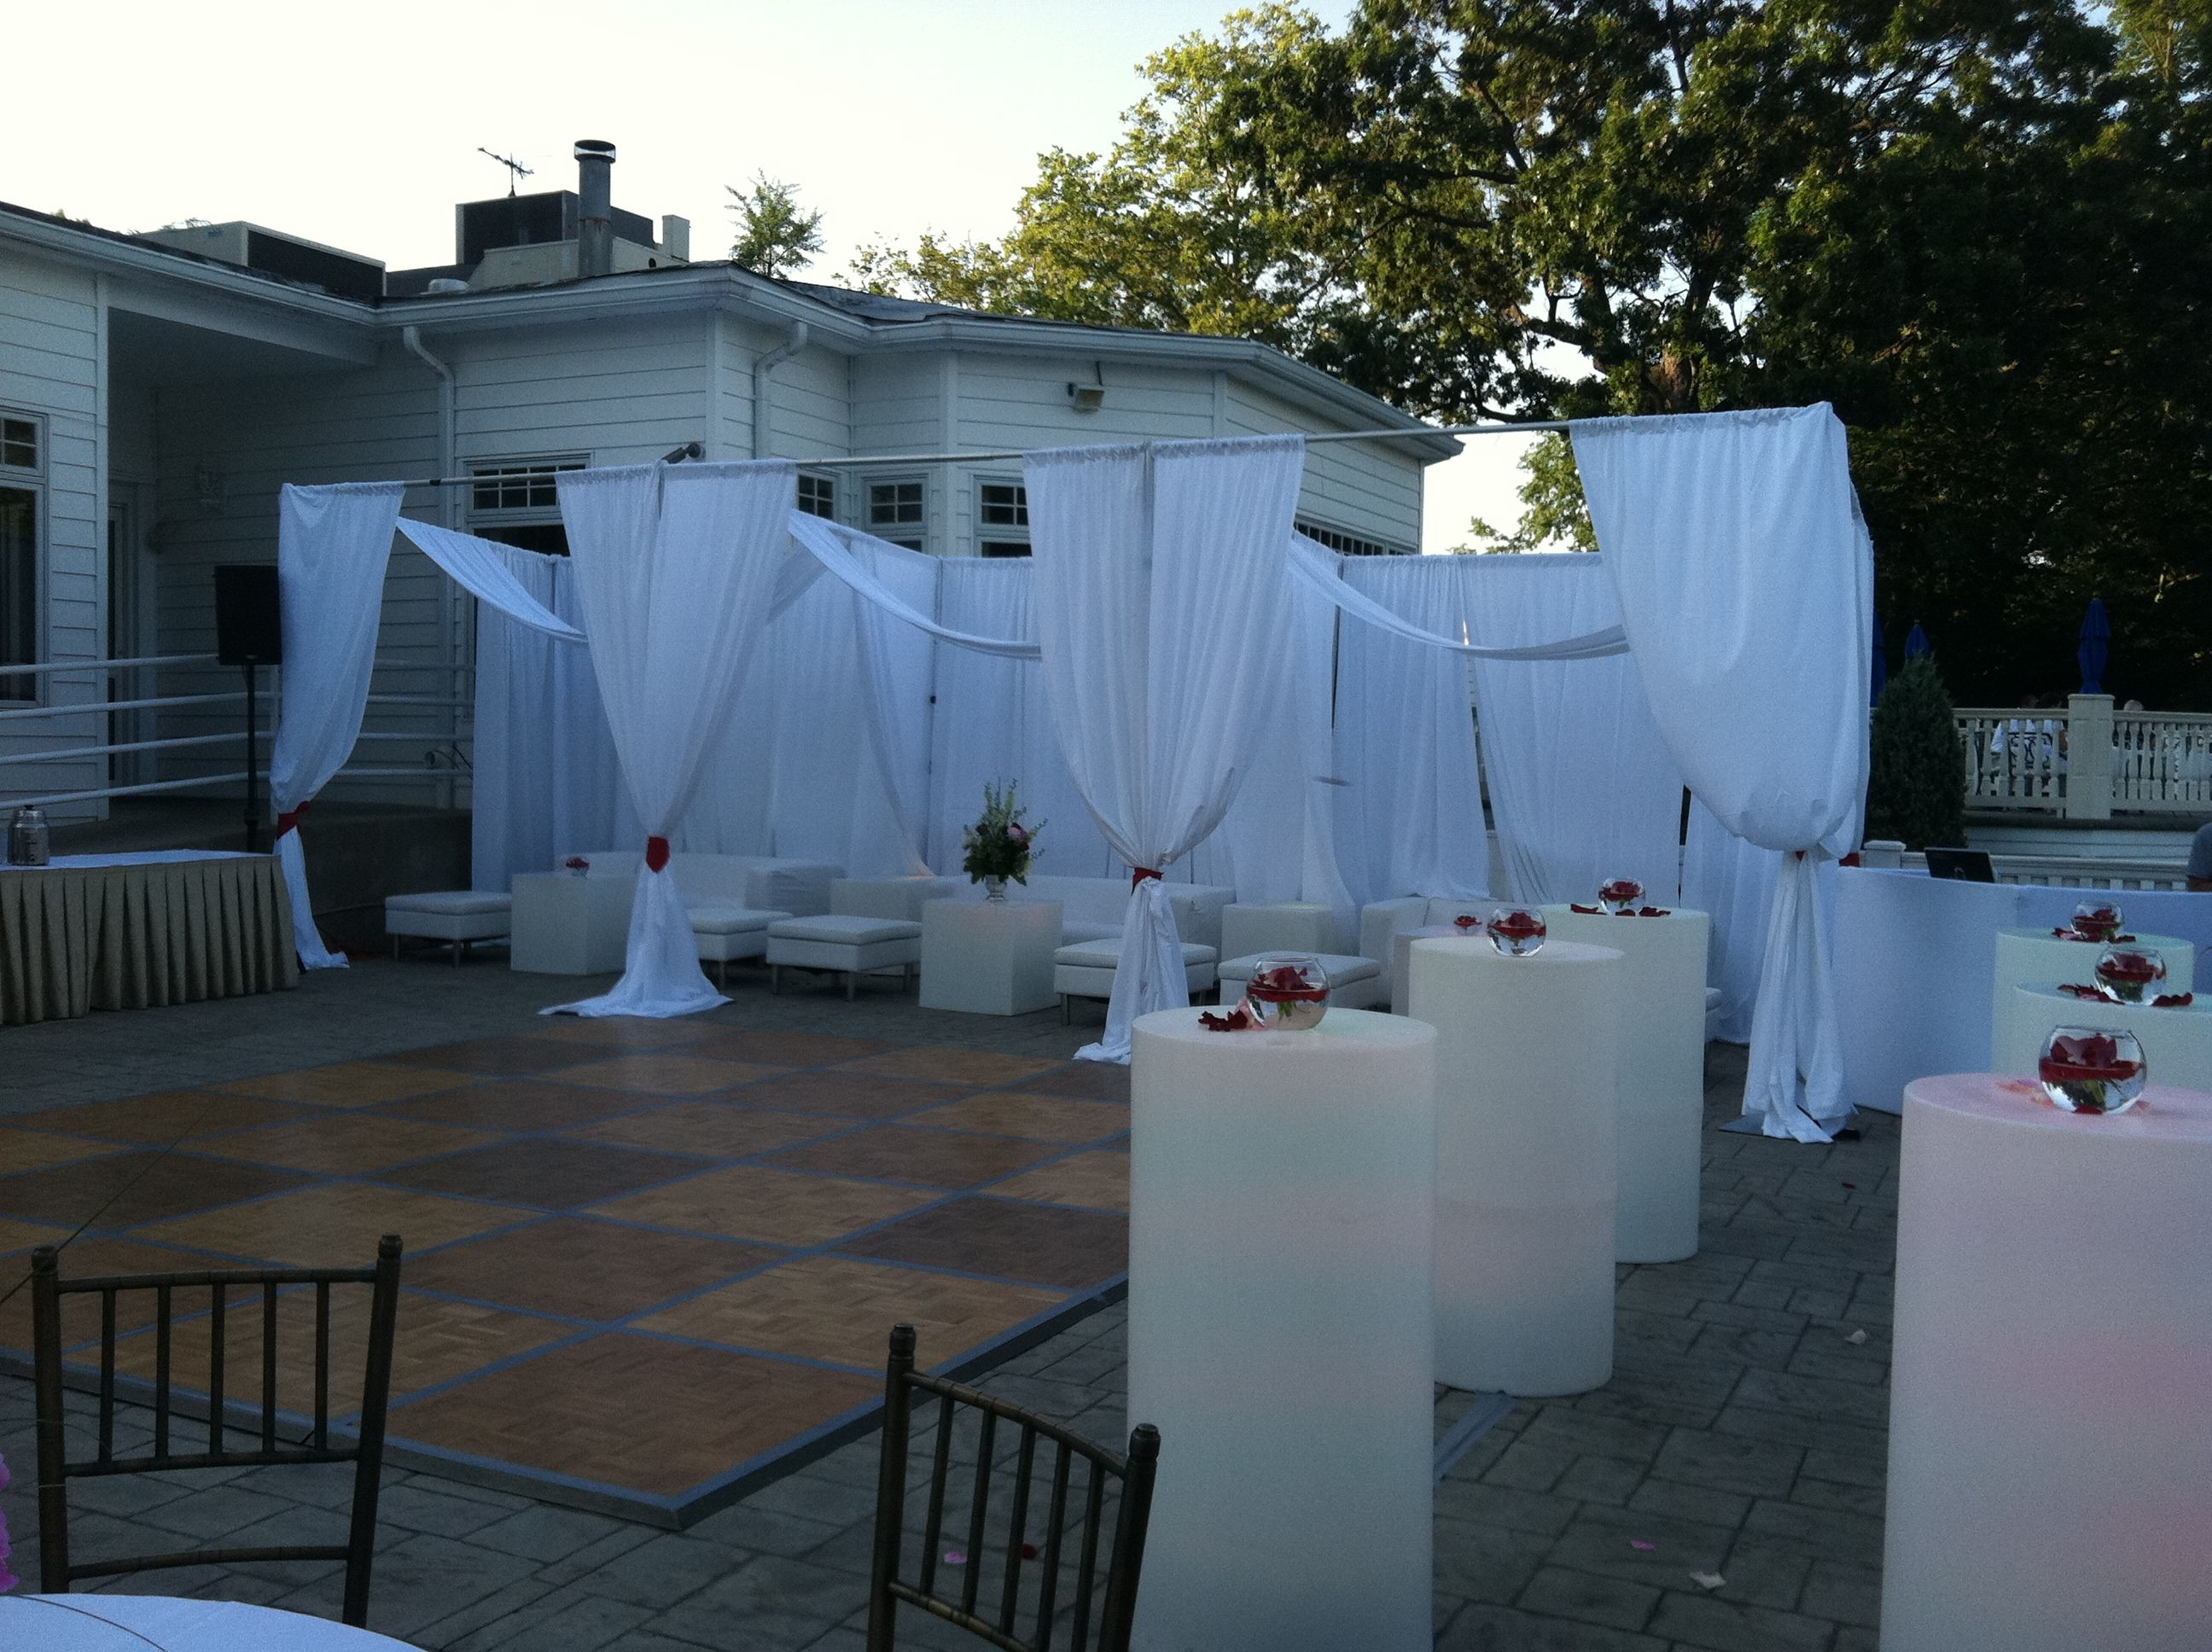 rent event va click a drapes draping md party tents rentals for tent dc grand wedding canopies